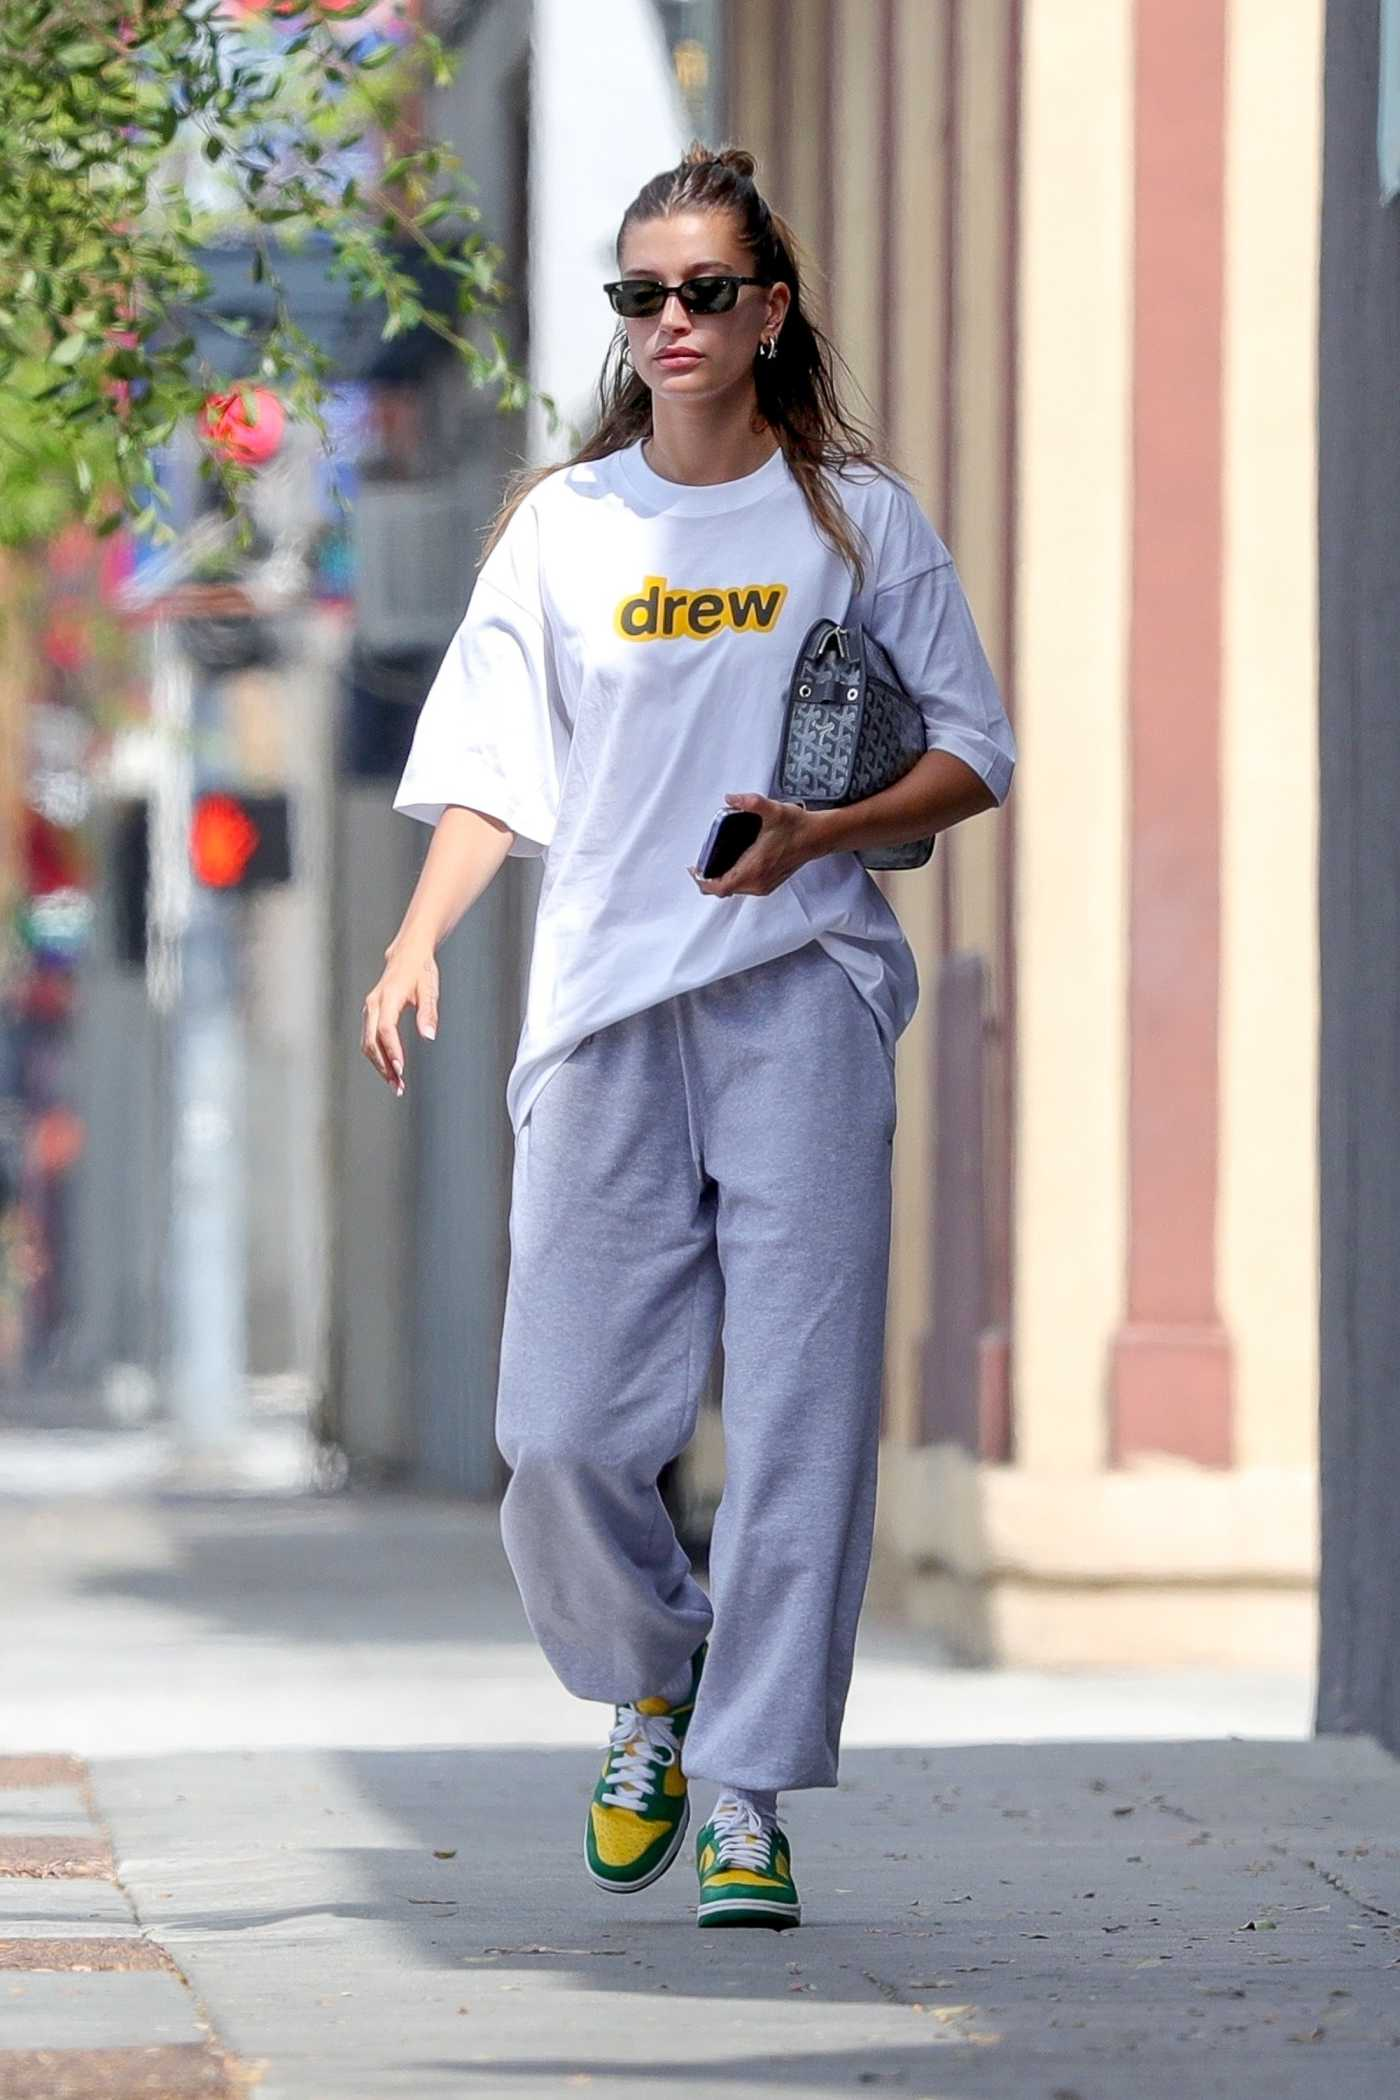 Hailey Baldwin in a White Tee Leaves the Voda Spa in West Hollywood 07/25/2021